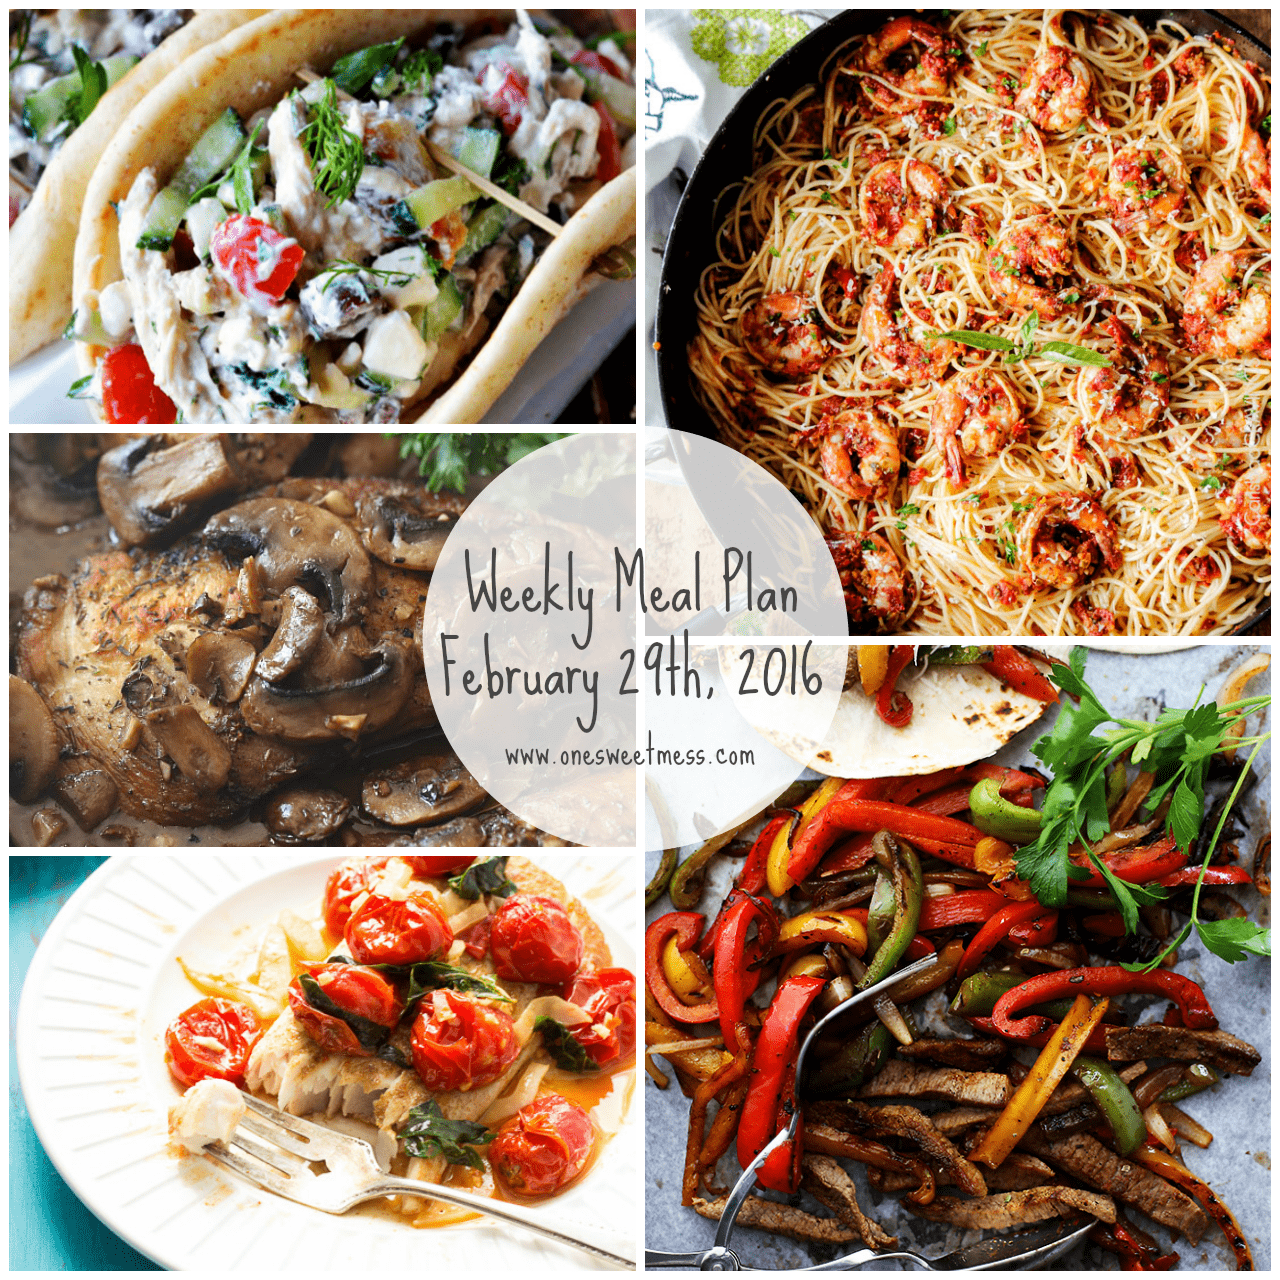 Week of February 29th, 2016 Weekly Meal Plan + Printable Grocery List